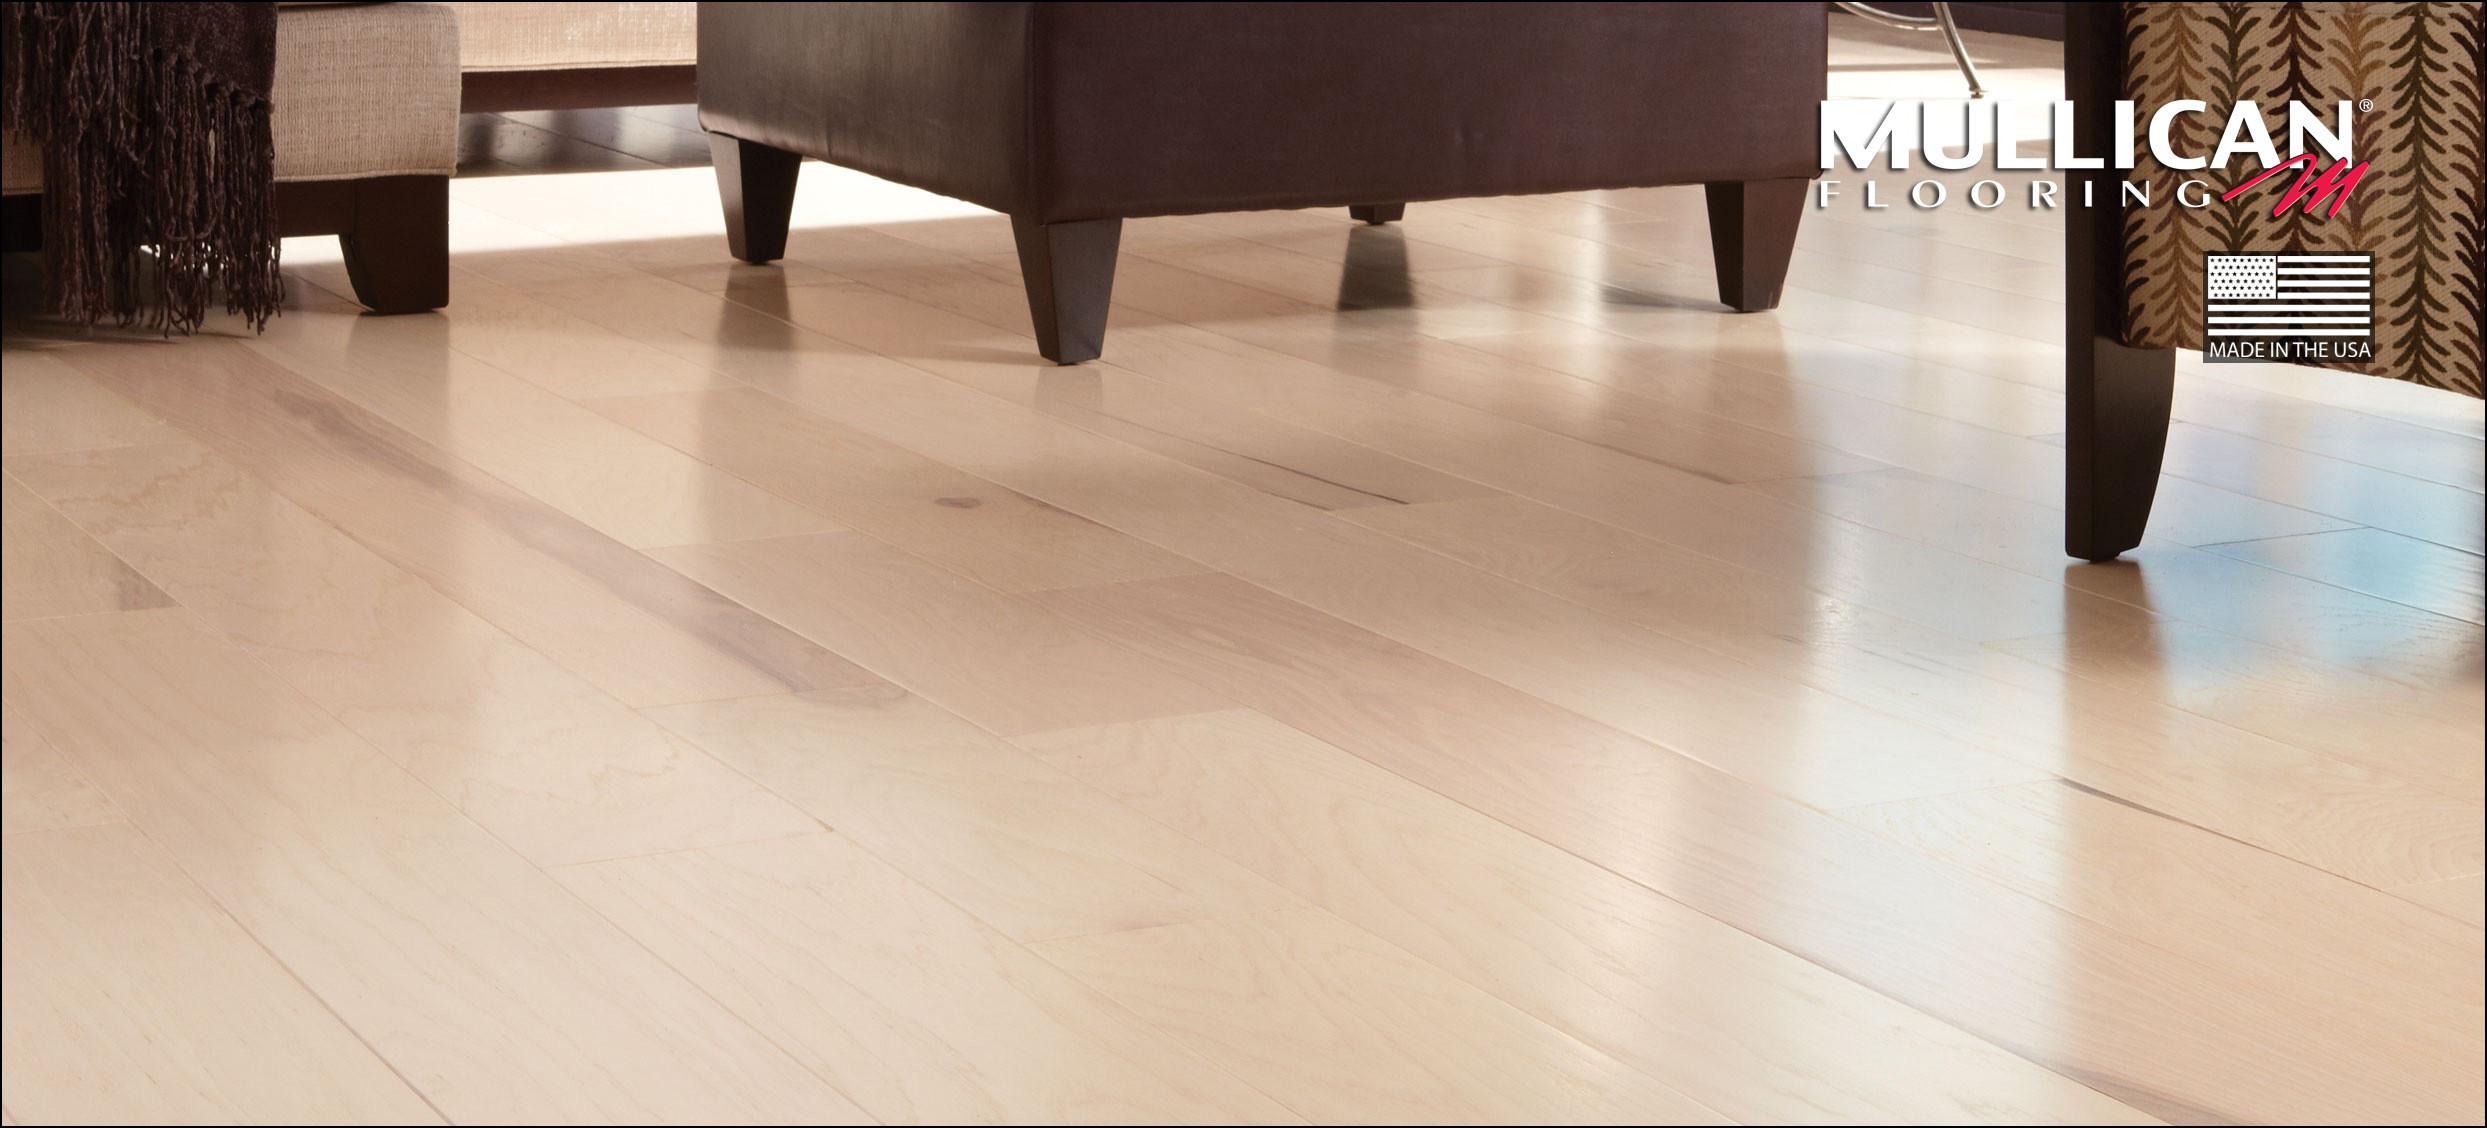 hardwood floor refinishing supplies near me of hardwood flooring suppliers france flooring ideas throughout hardwood flooring installation san diego mullican flooring home of hardwood flooring installation san diego